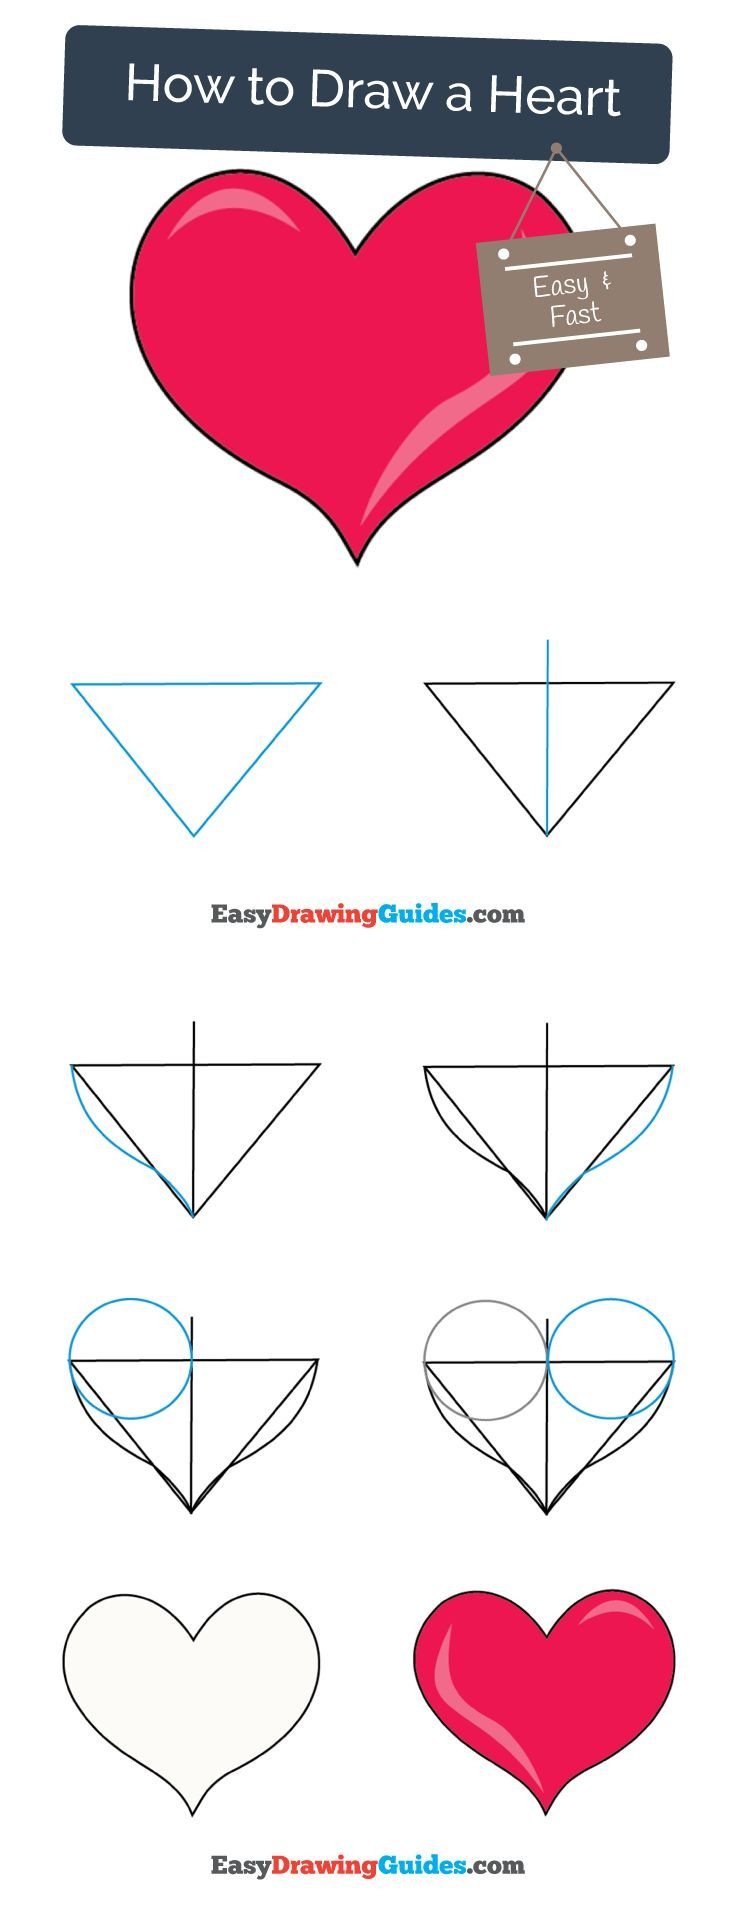 How to Draw a Heart | Drawing tutorials for kids, Easy ...